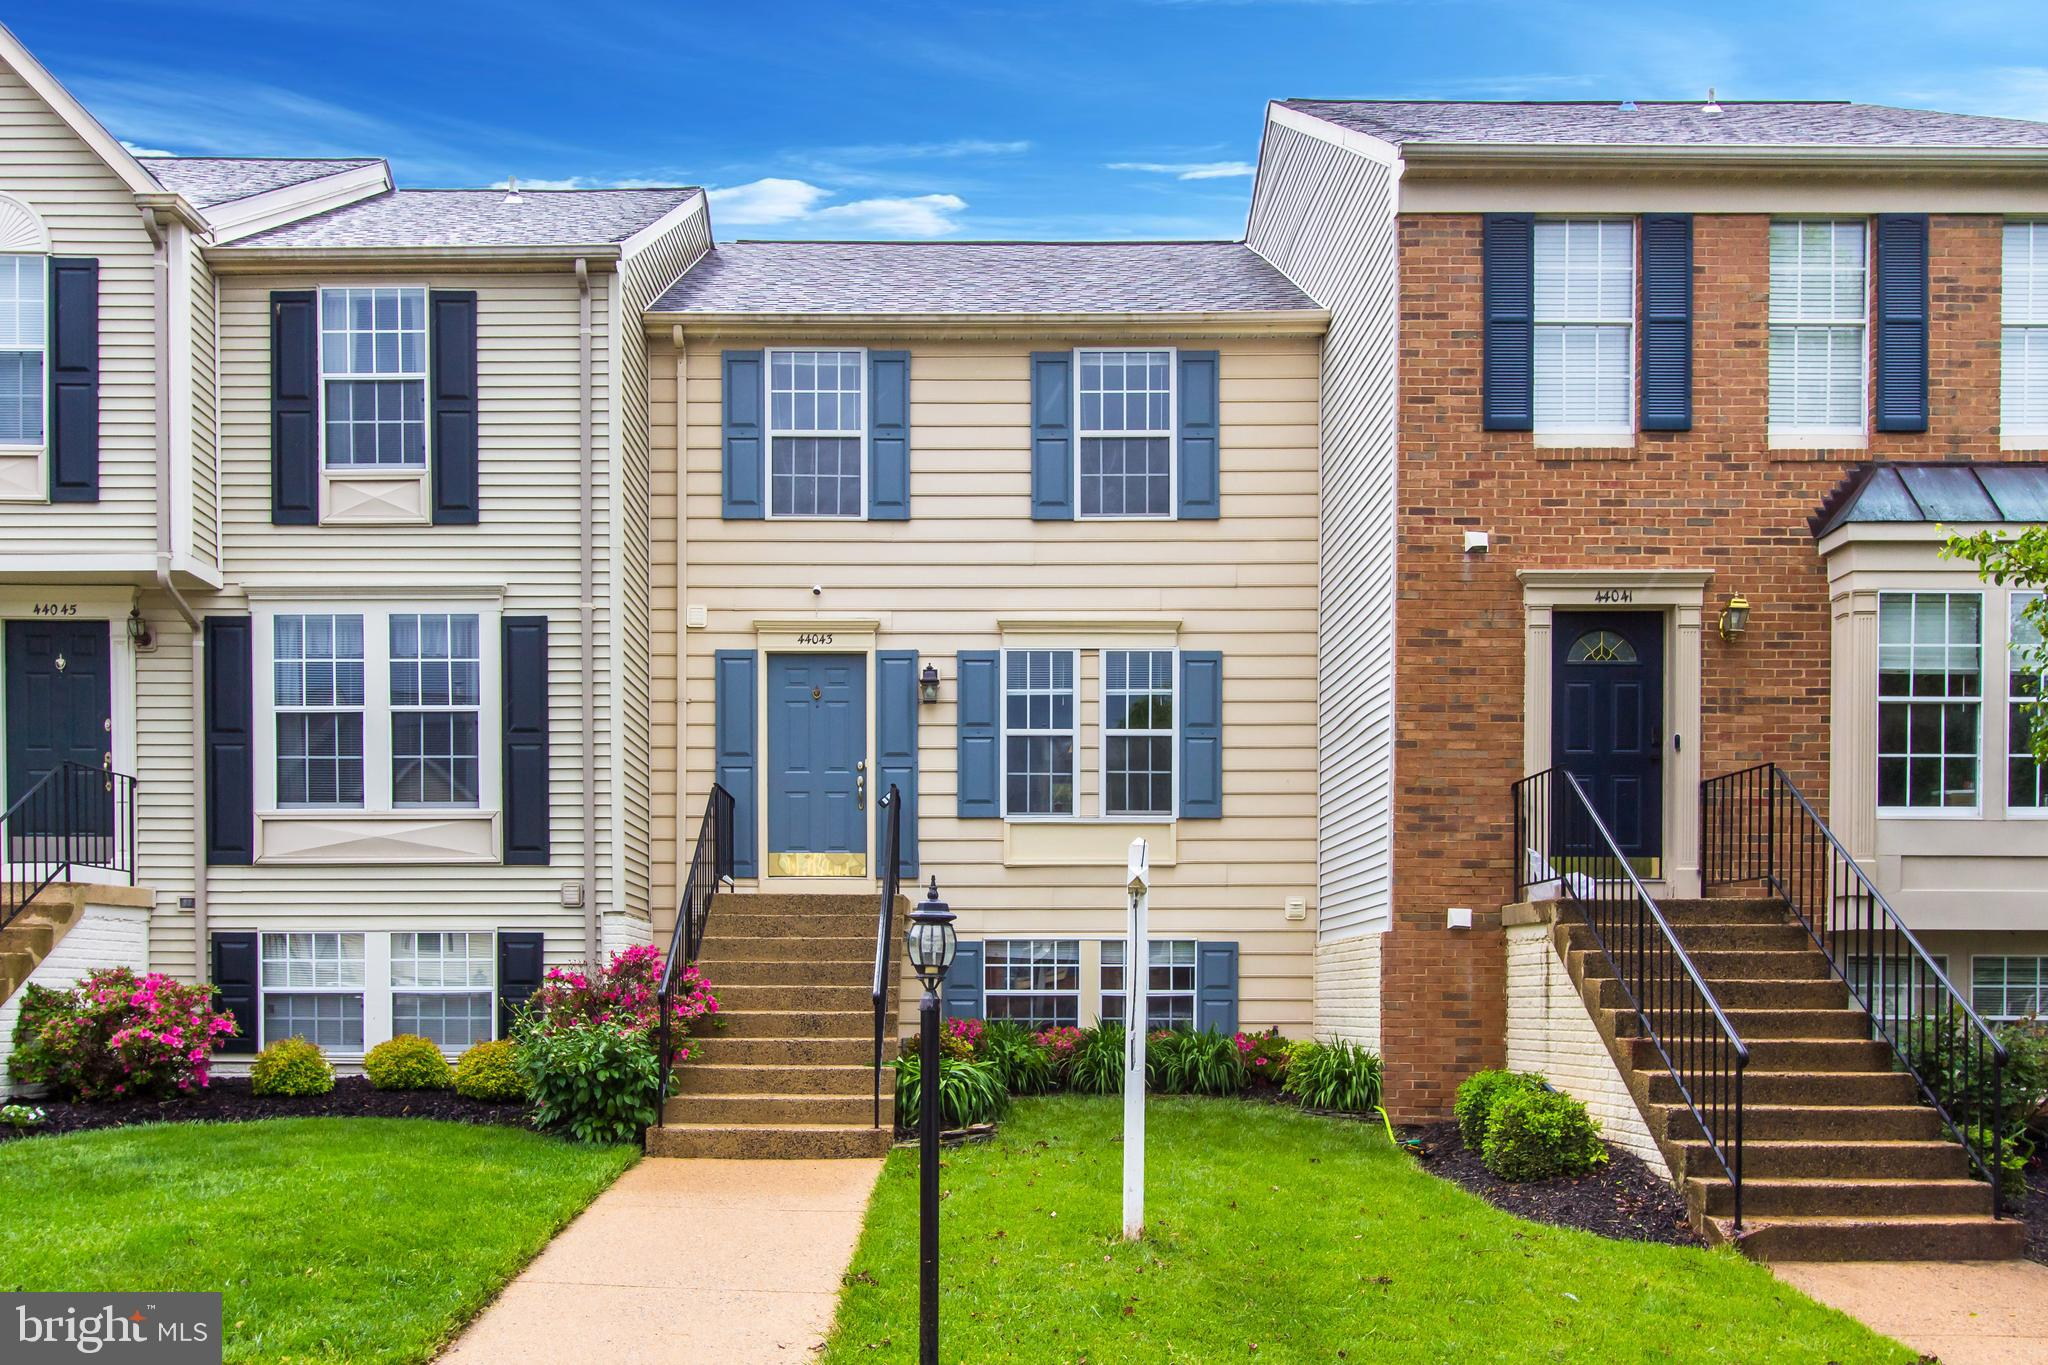 Move in ready and very well maintained, this three level TH features fresh paint throughout as well